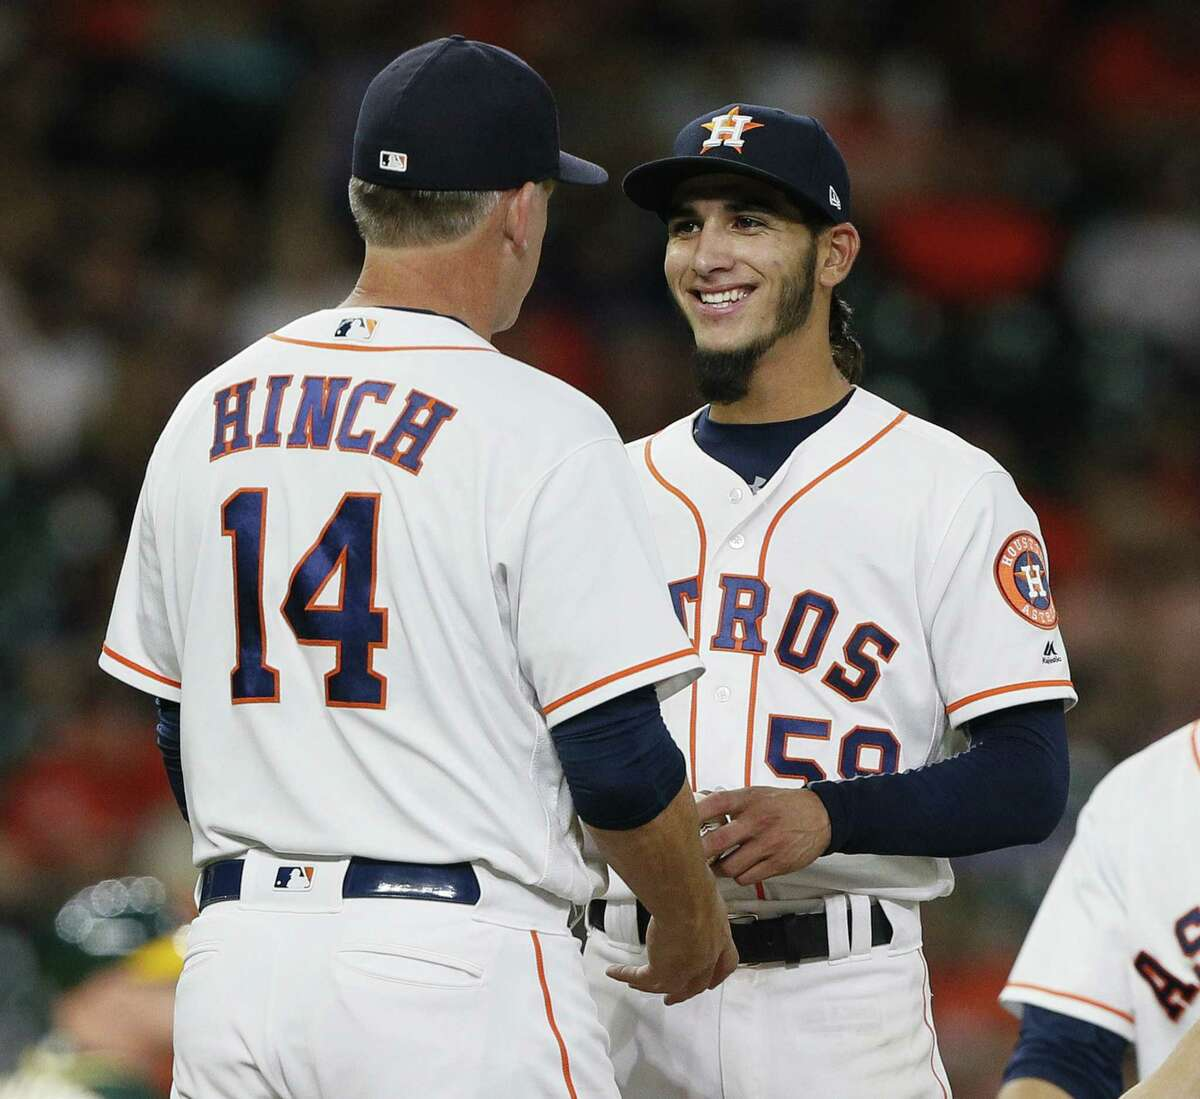 PHOTOS: A joyous Cionel Perez in his major league debut Manager AJ Hinch of the Houston Astros takes the ball from Cionel Perez in the ninth inning at Minute Maid Park on July 11, 2018 in Houston. Browse through the photos above for a look at the sheer joy on the face of Cionel Perez during his major league debut.